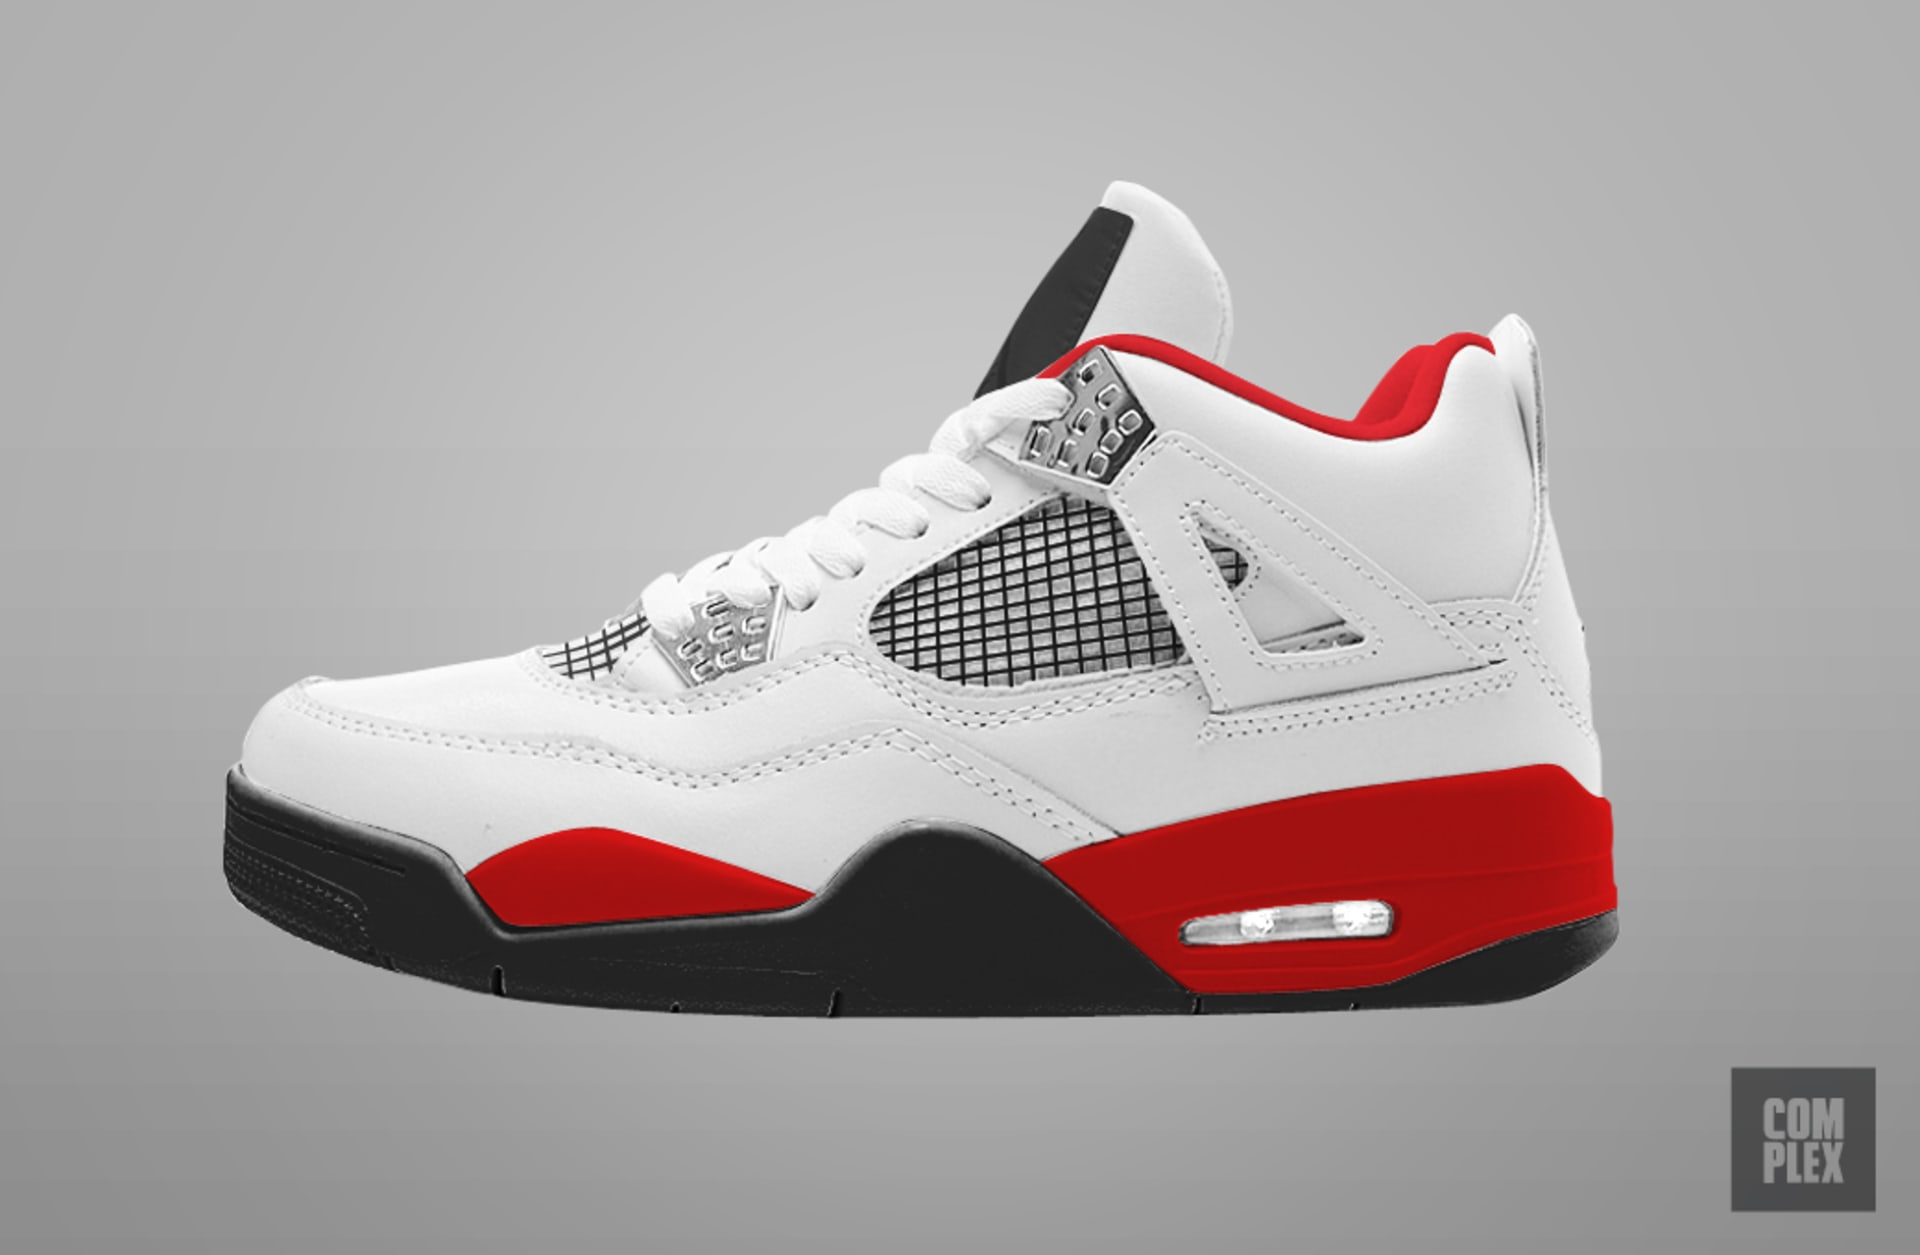 8d13ed34fbccc3 Supreme x Air Jordan Collab Sneakers We Wish Were Real